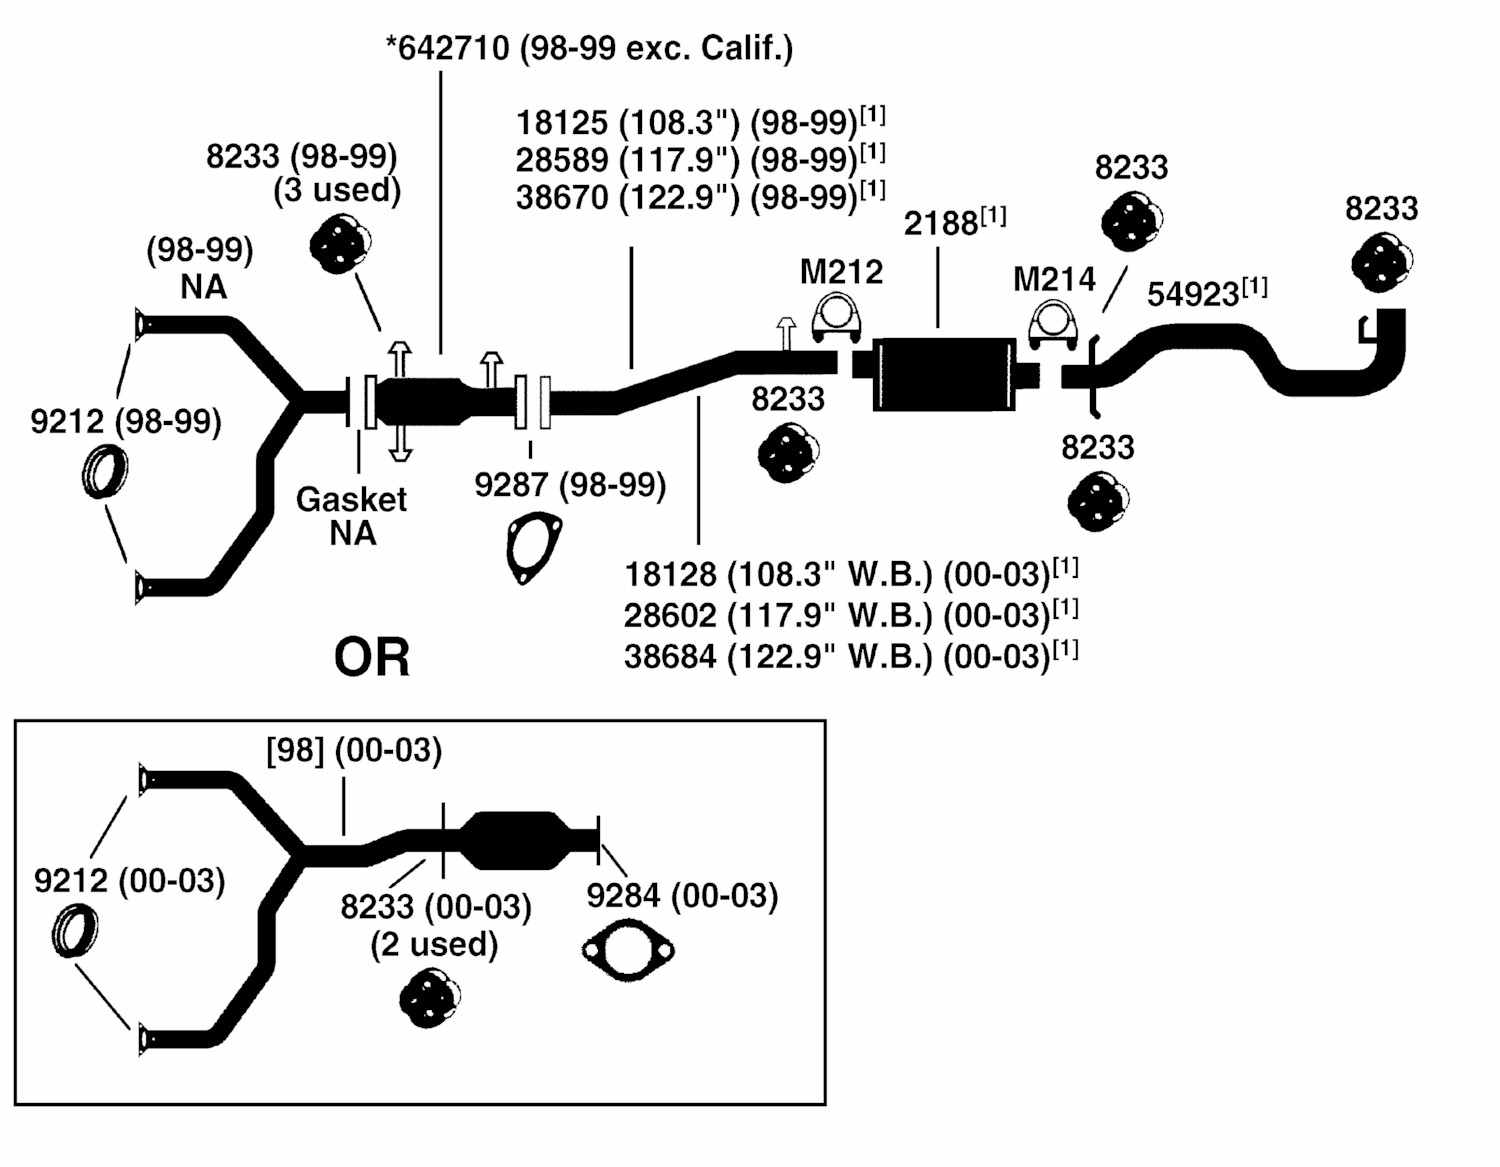 T607046 Diagram serpentine belt together with Illust Ref c Exhaust furthermore 2000 Chevy Cavalier Fuel System Diagram further Gmc Sierra Front Suspension Diagram also Transmission Cooler Line Seals 49041. on 2005 chevy aveo engine parts diagram